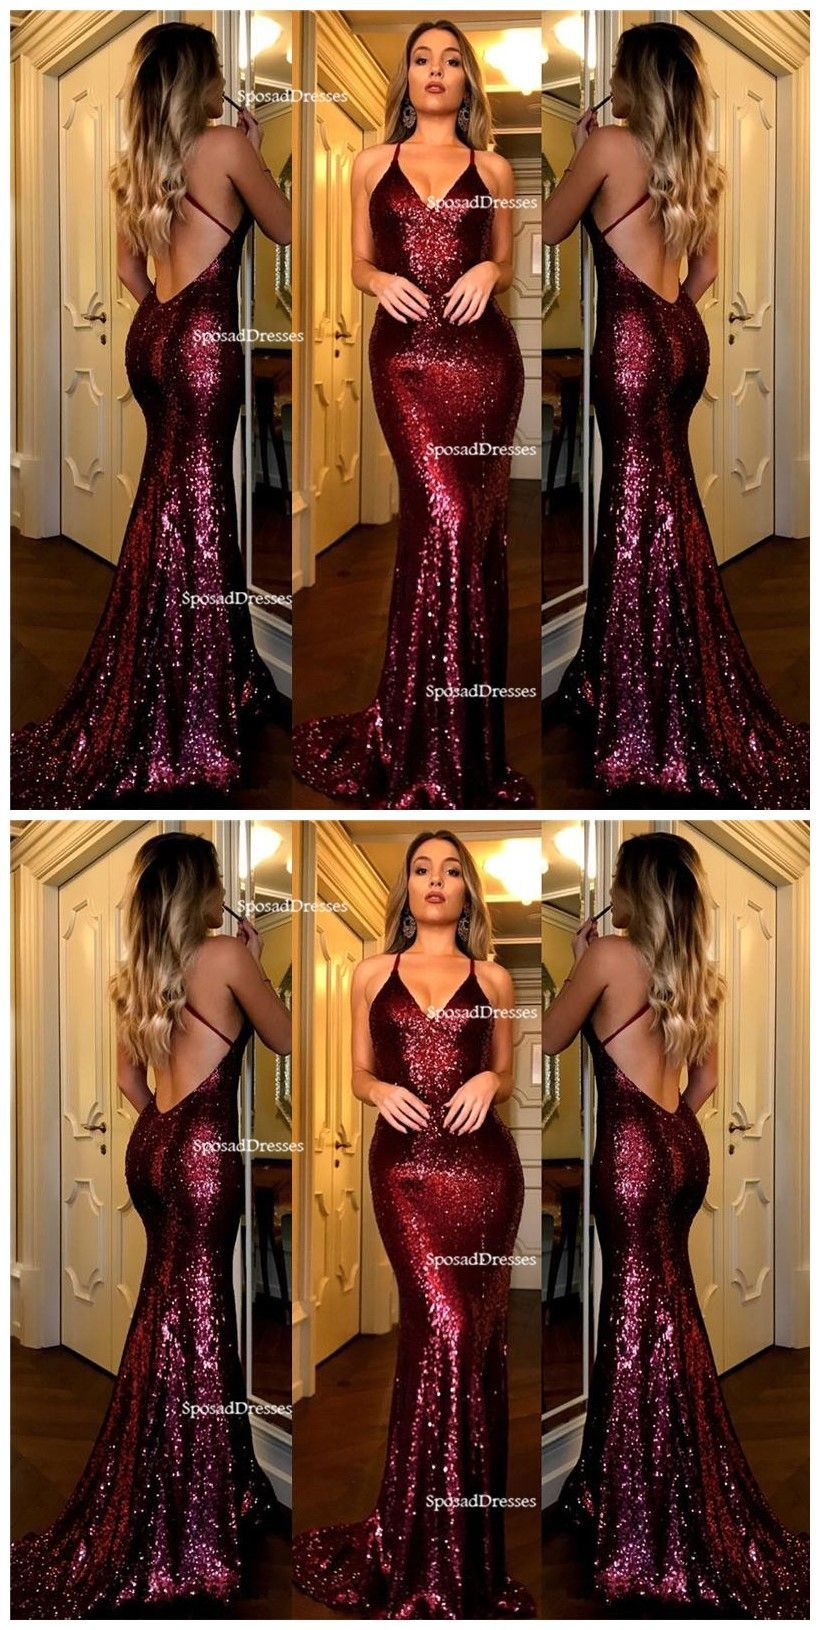 Sexy backless dark red sequin mermaid evening prom dresses popular